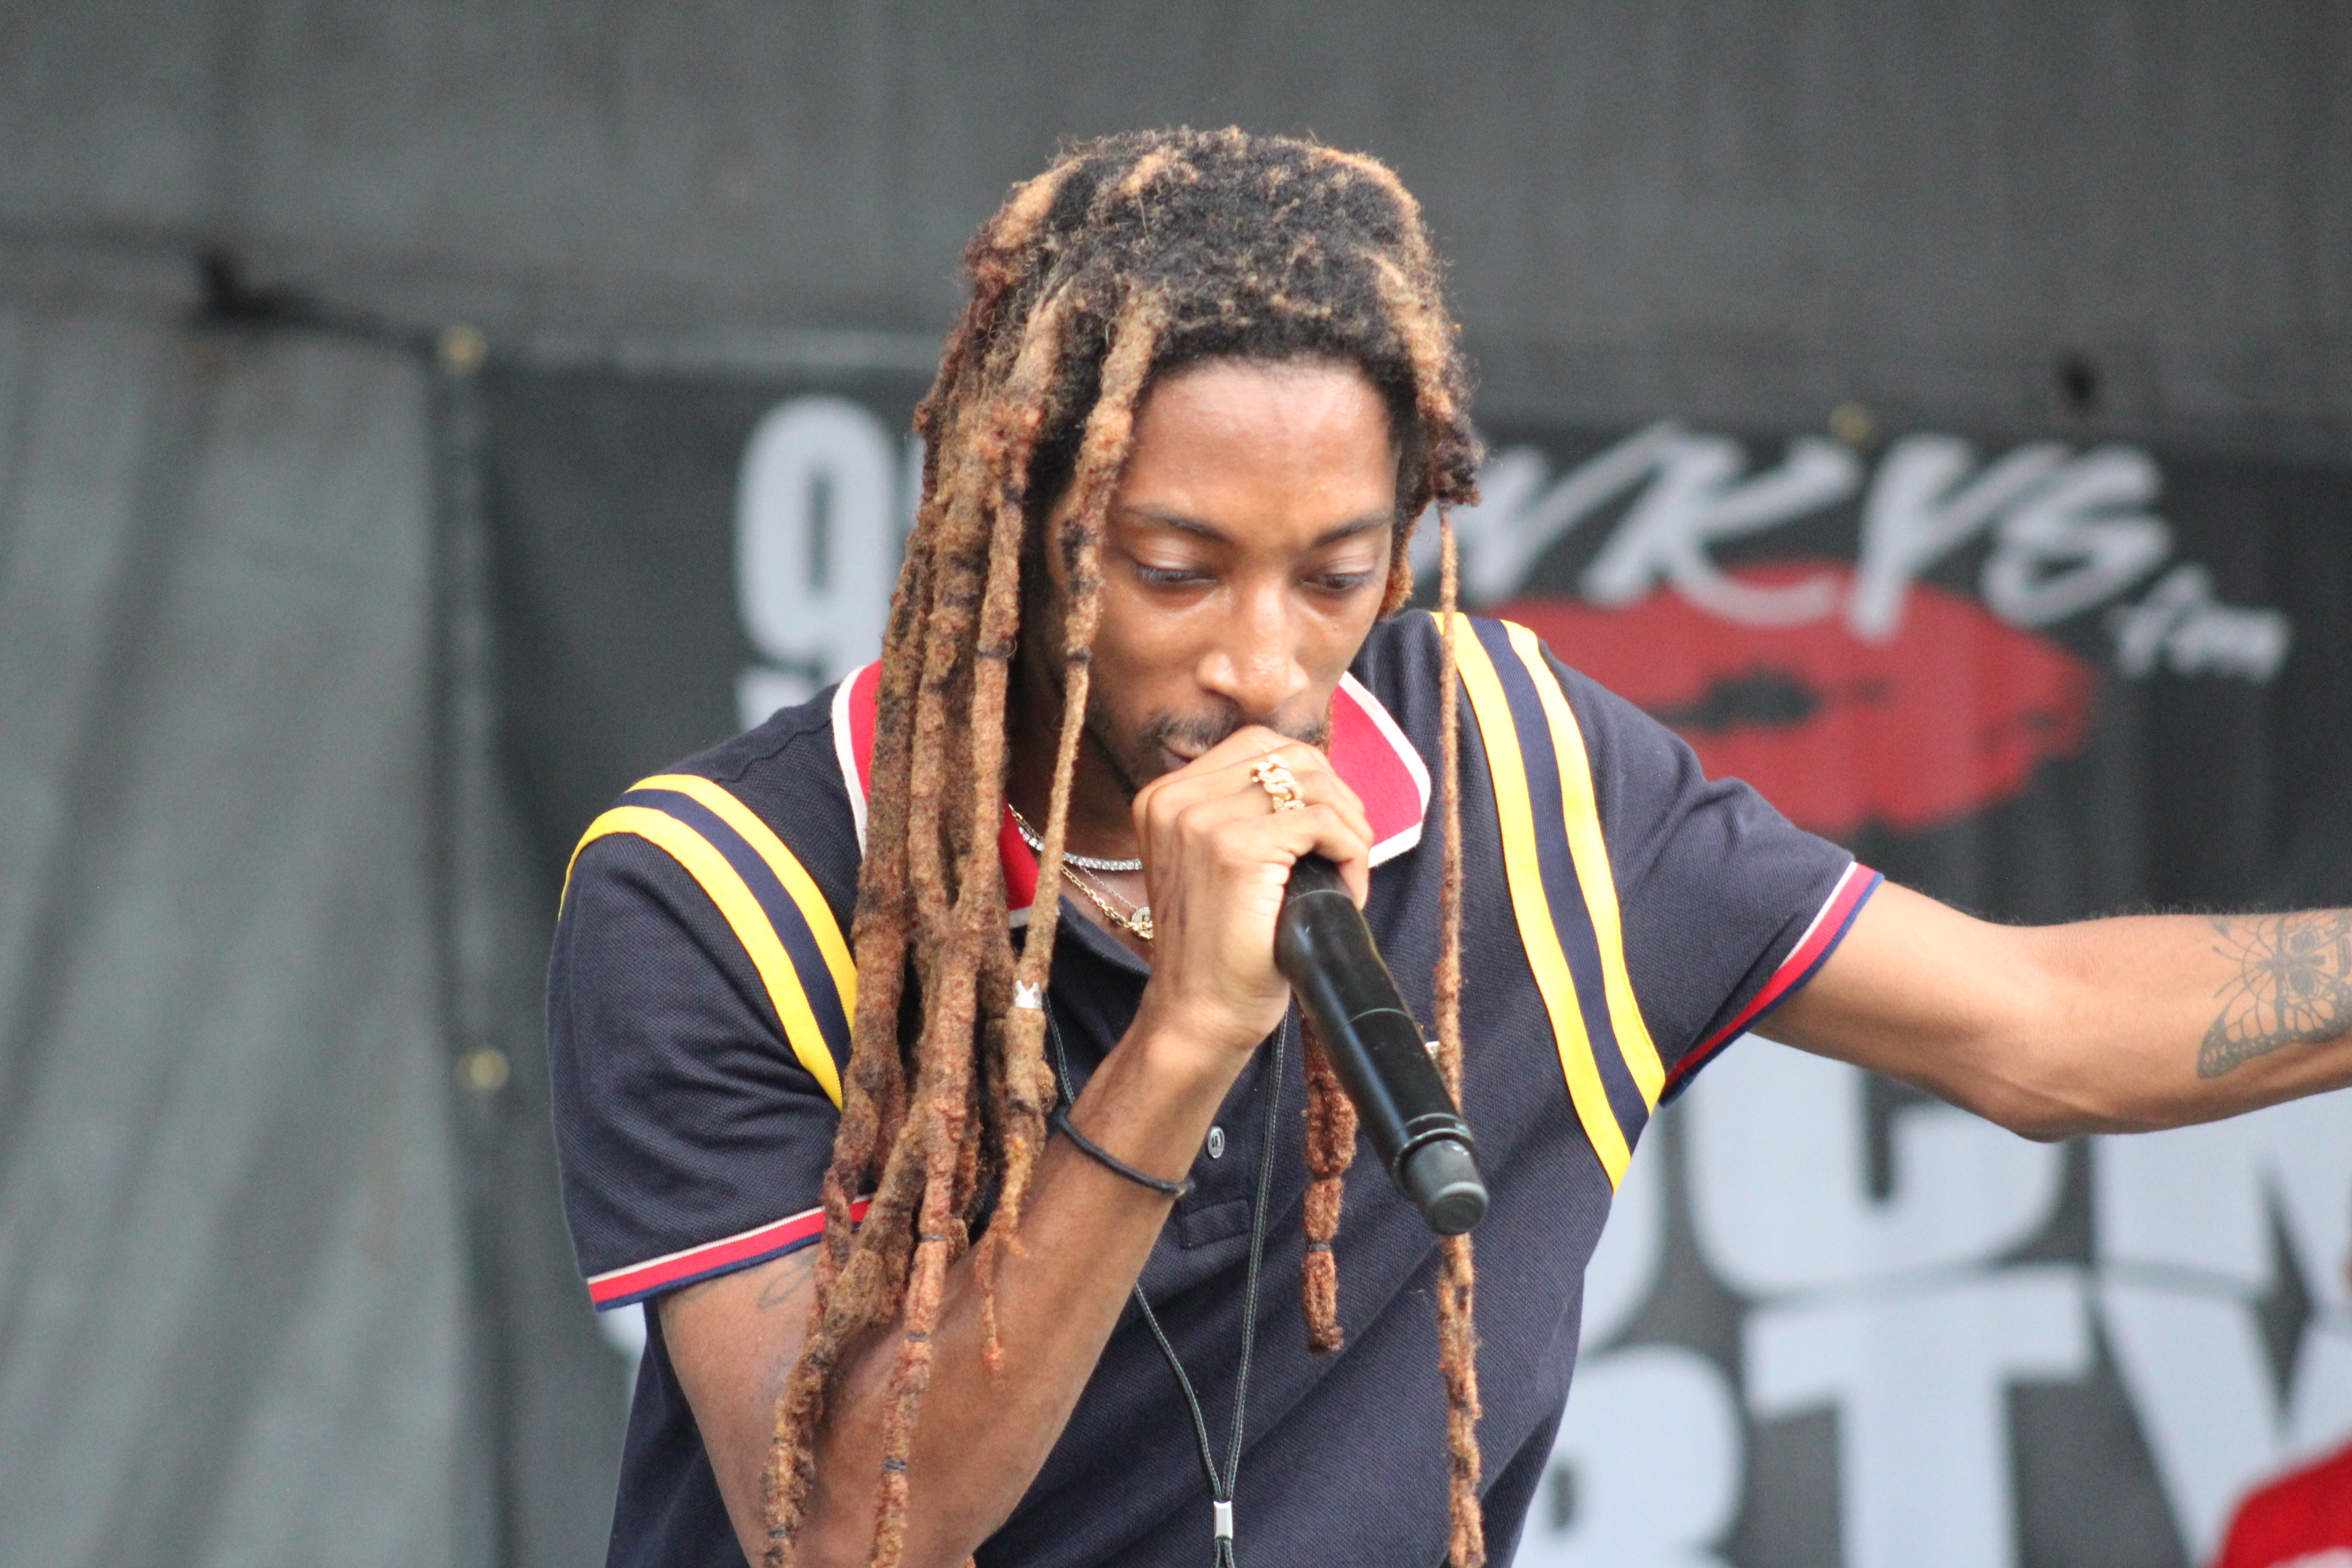 Beau Young Prince At The 93.9 WKYS Black Party